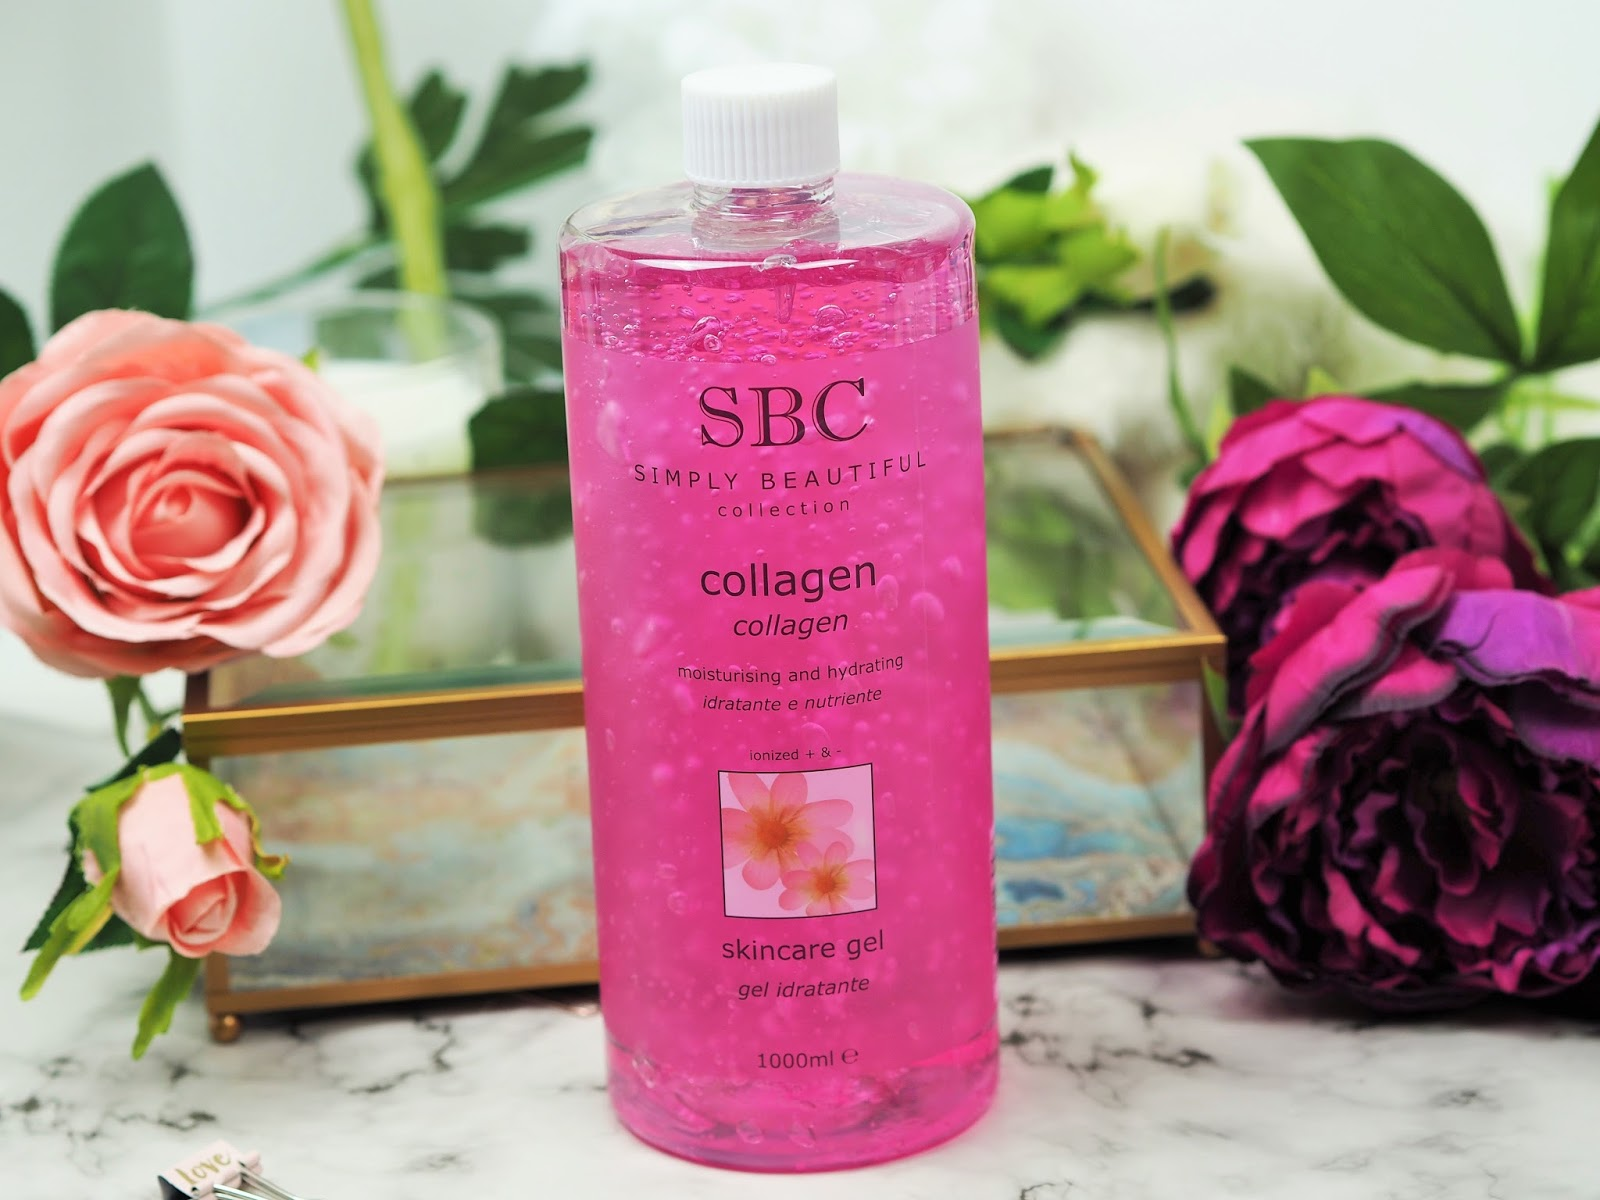 Collagen Skincare Gel - SBC